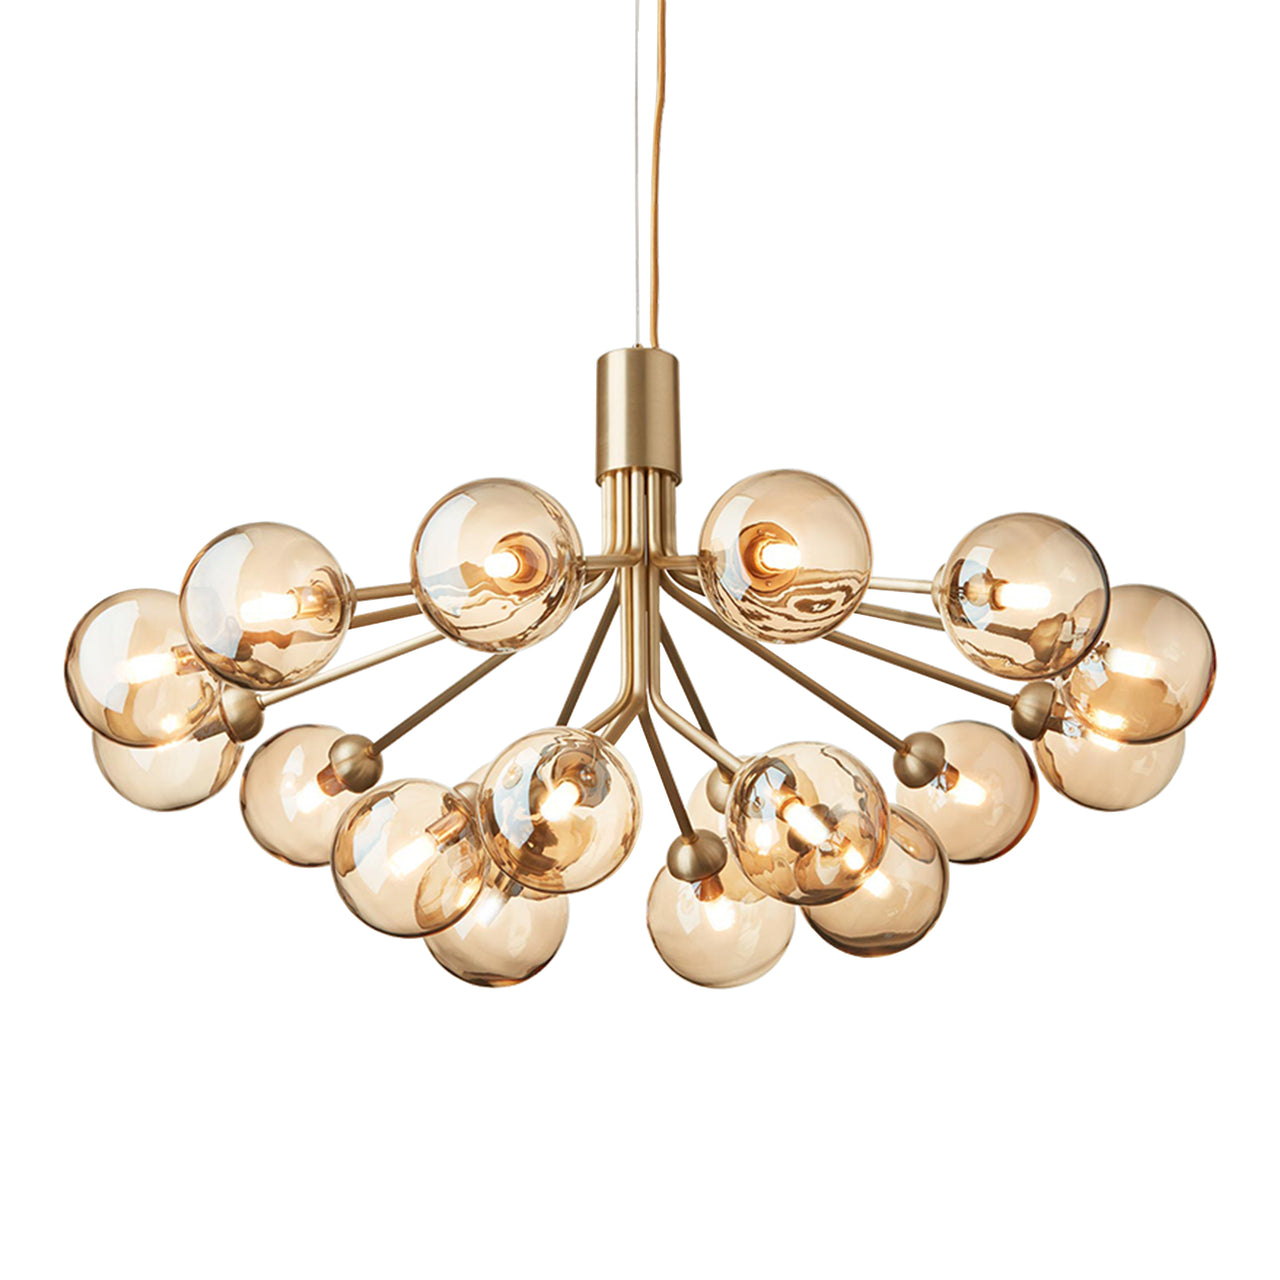 Apiales 18 Chandelier: Brushed Brass + Gold